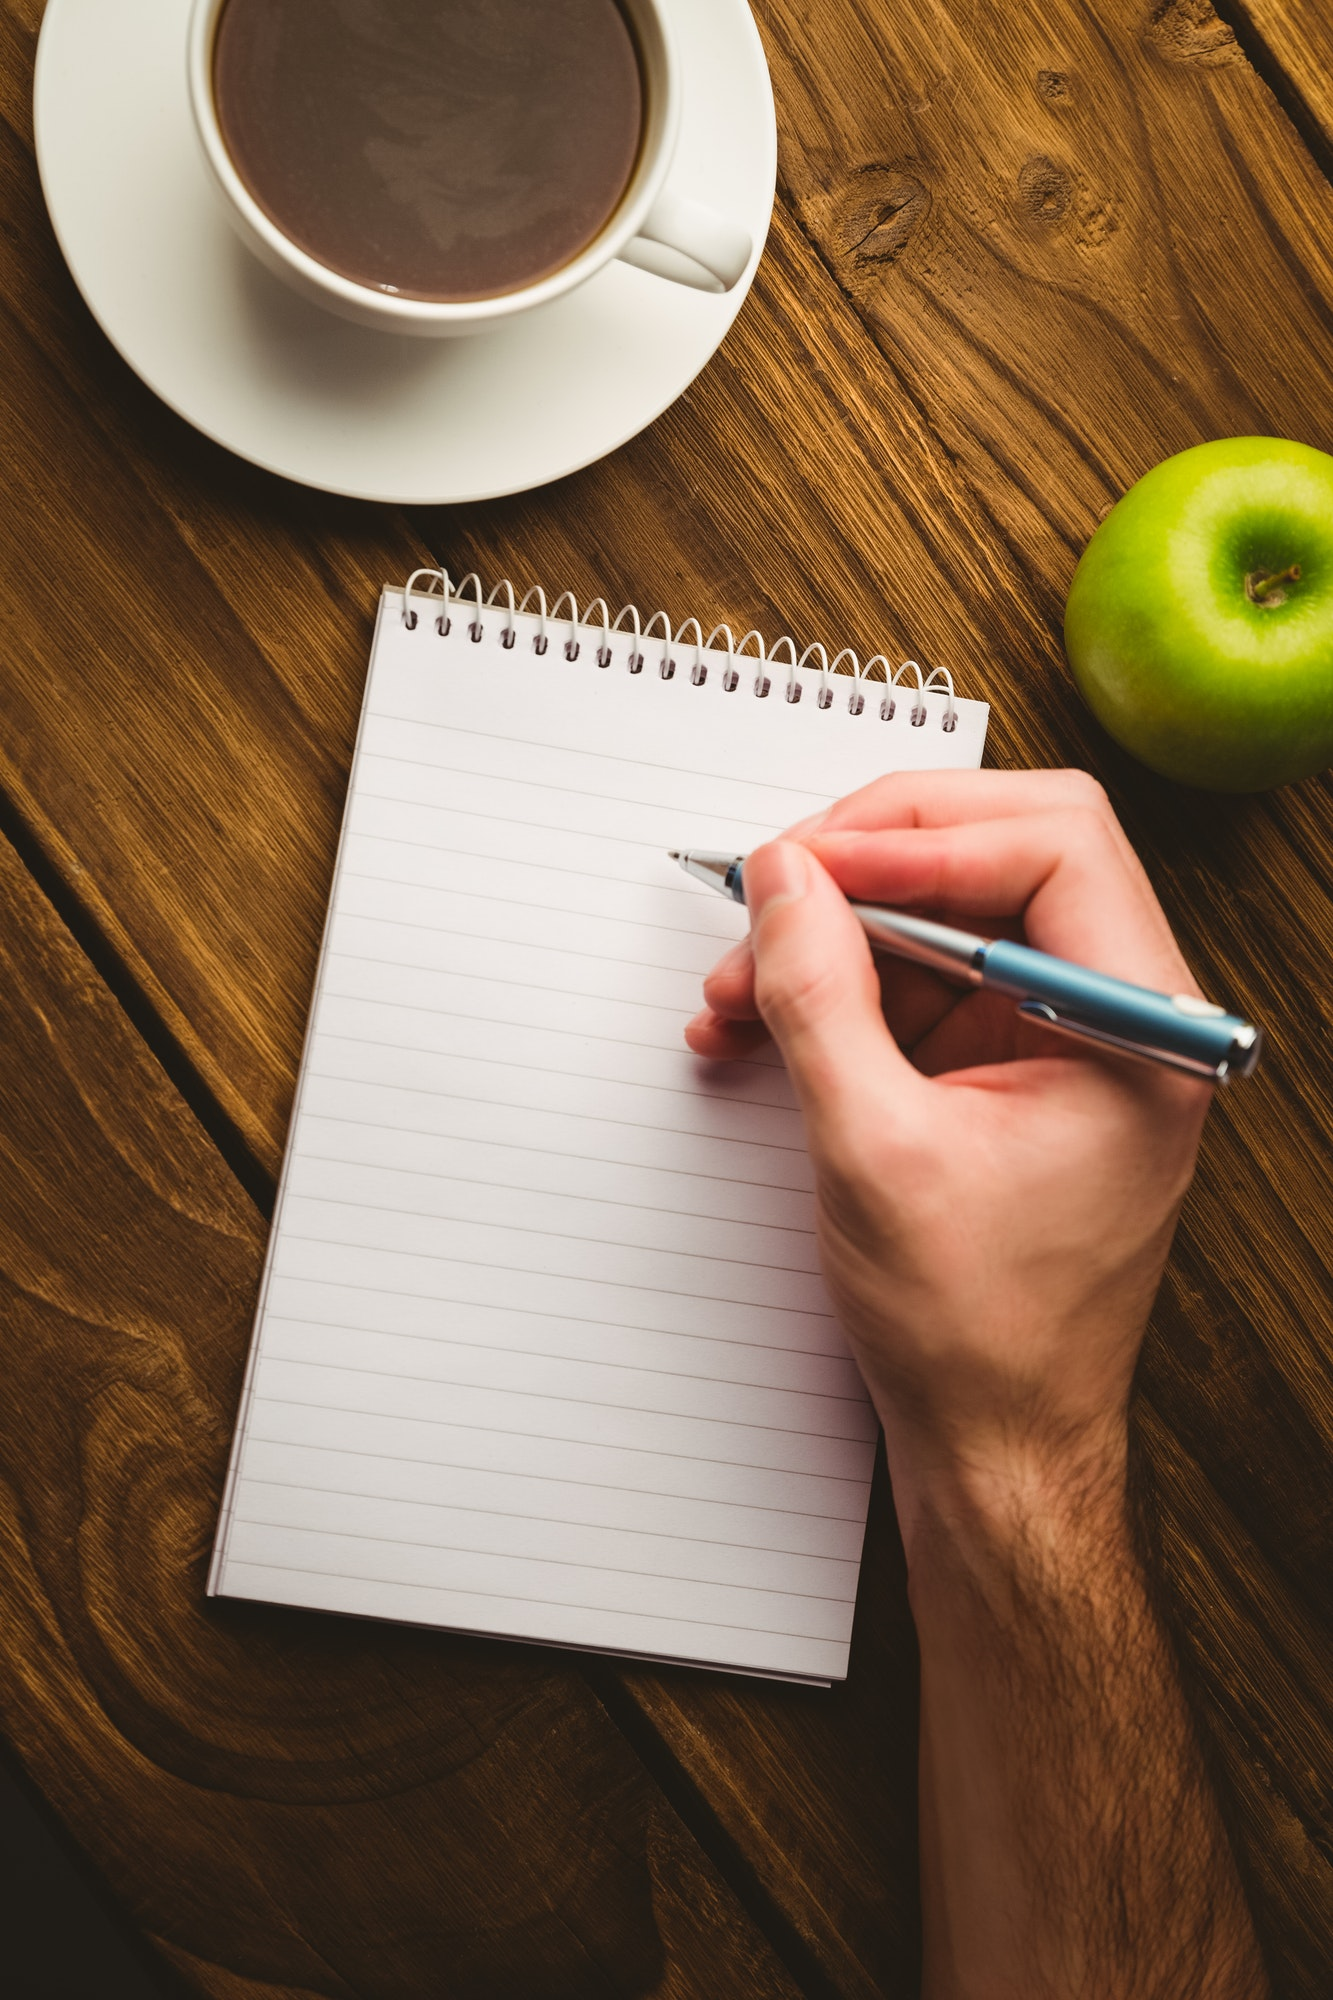 Hand writing on the notepad on a desk